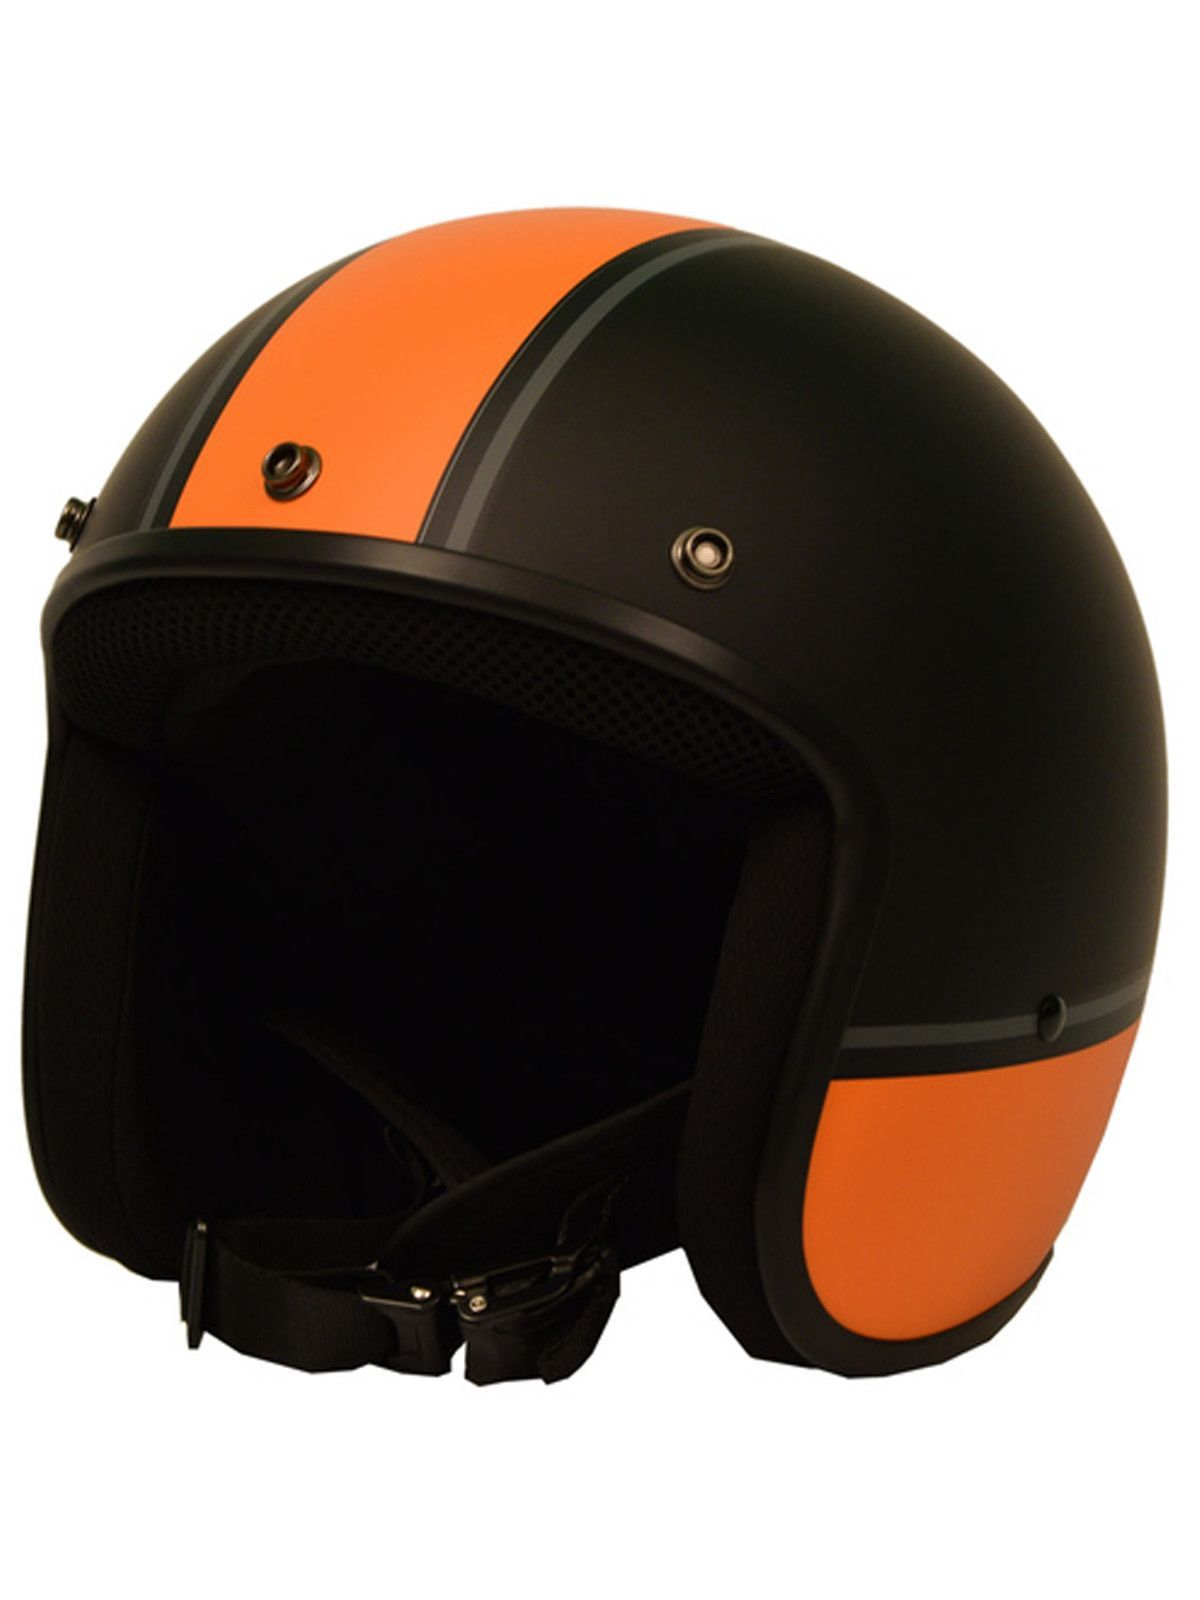 Sick Lid 3 4 Retro Orange Racing Stripe Motorcycle Helmet